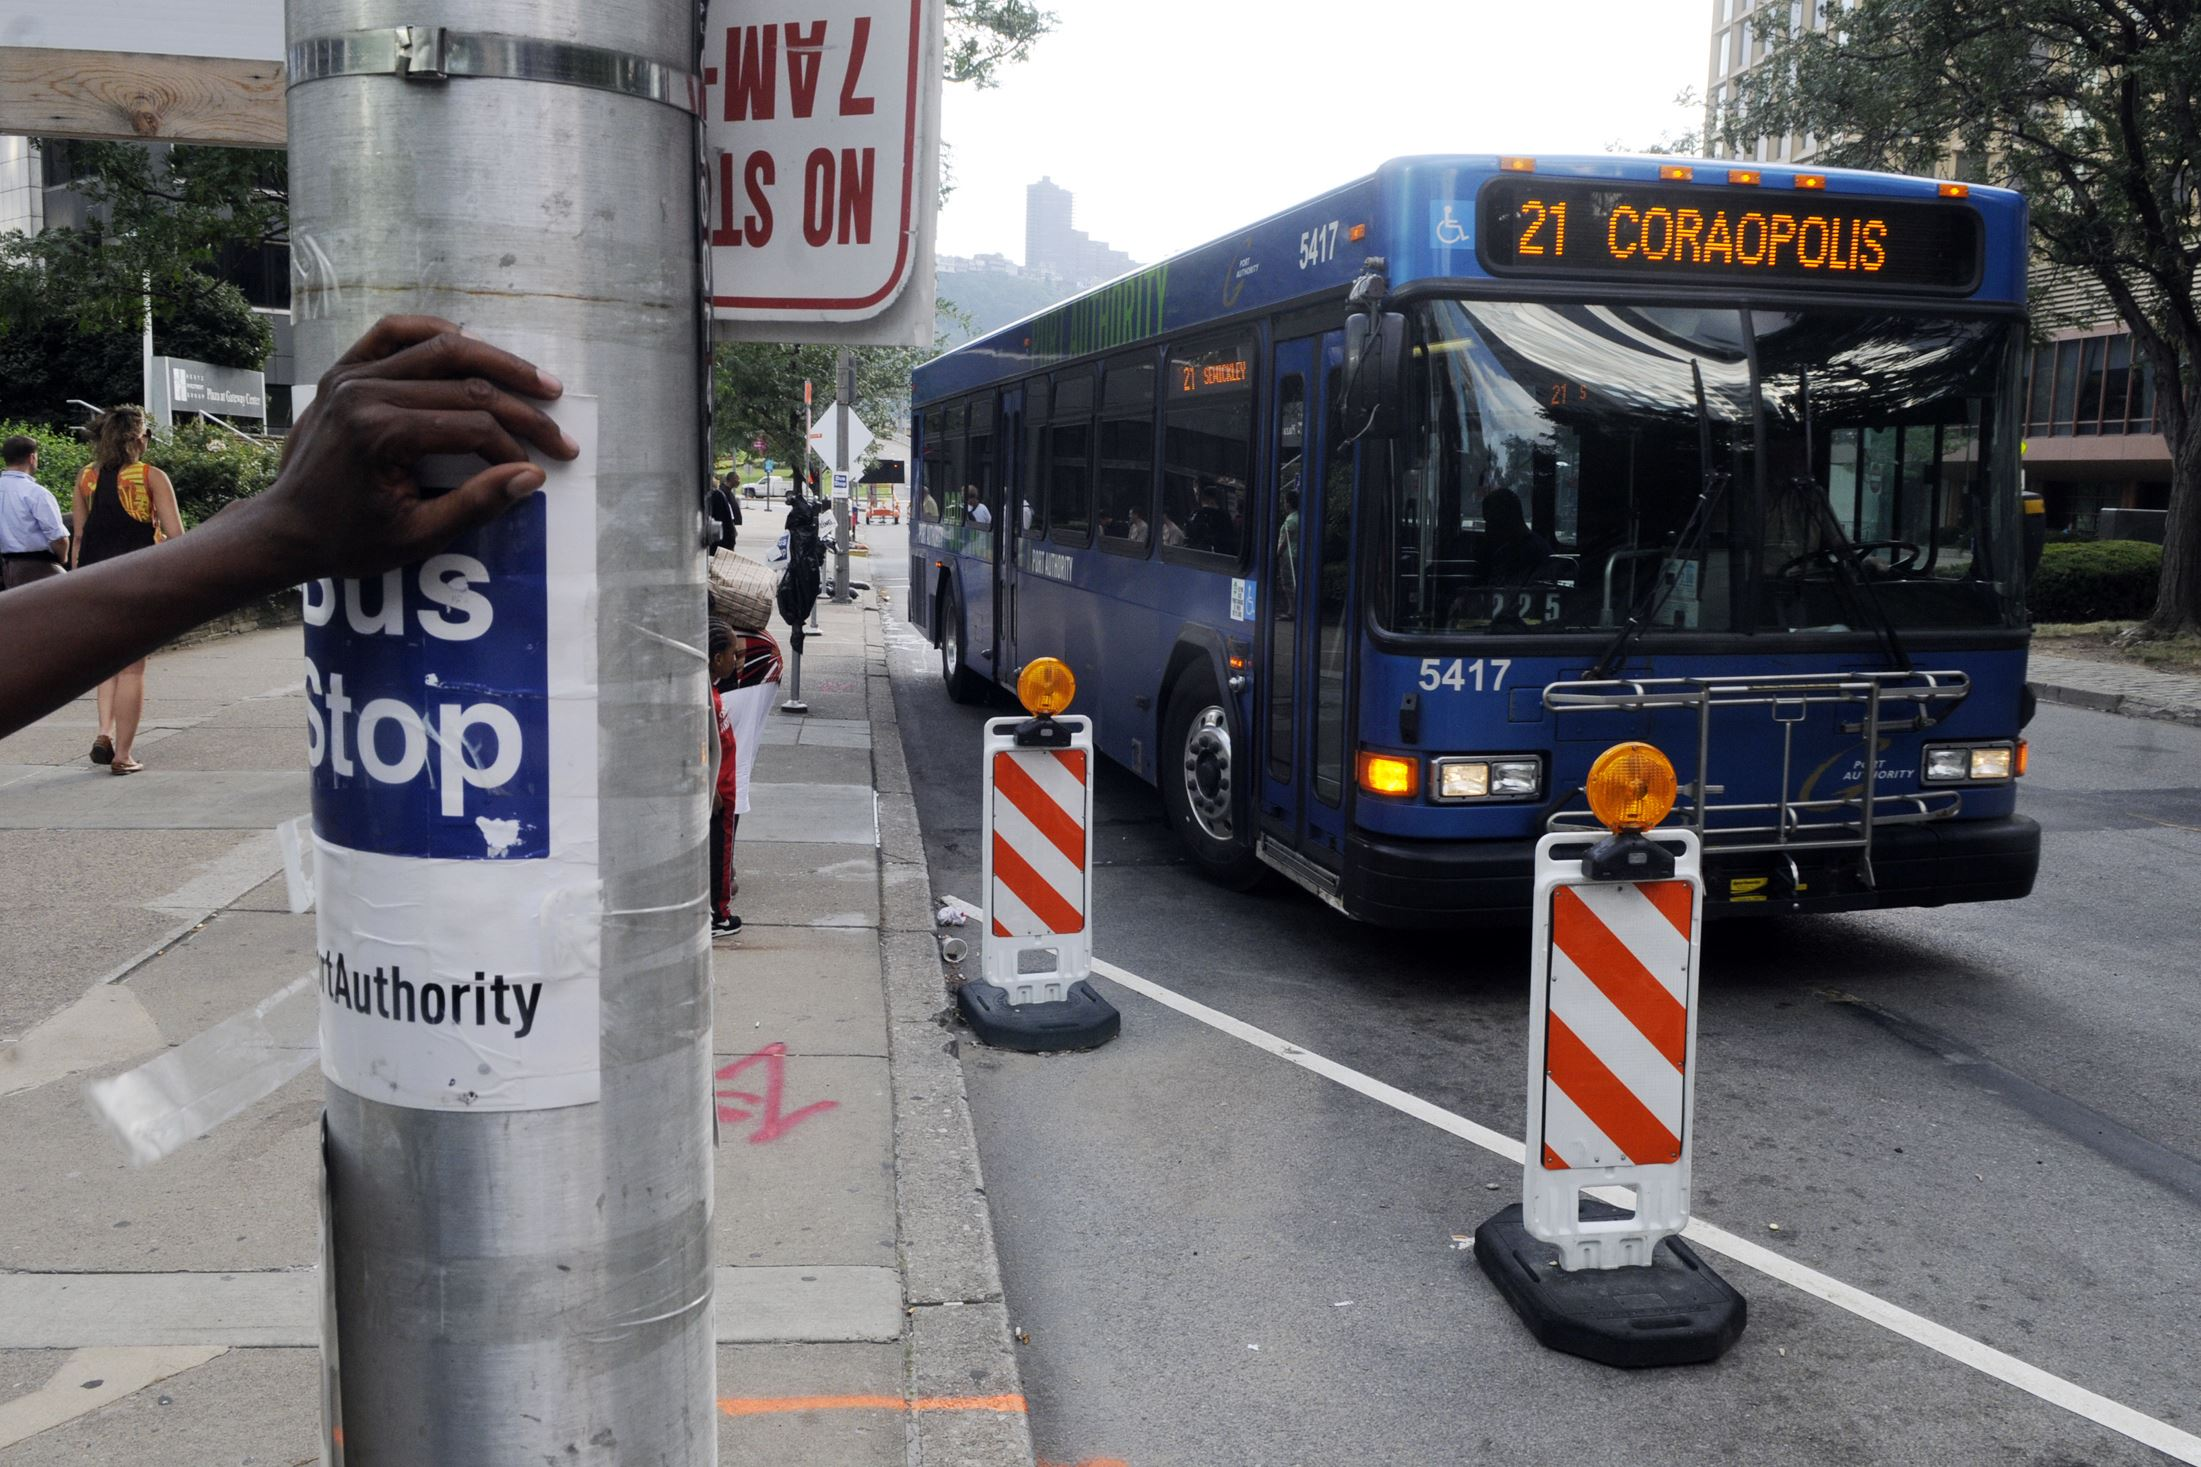 Oakland to downtown transit proposal a slow starter in city pittsburgh post gazette - Port authority bus schedule ...